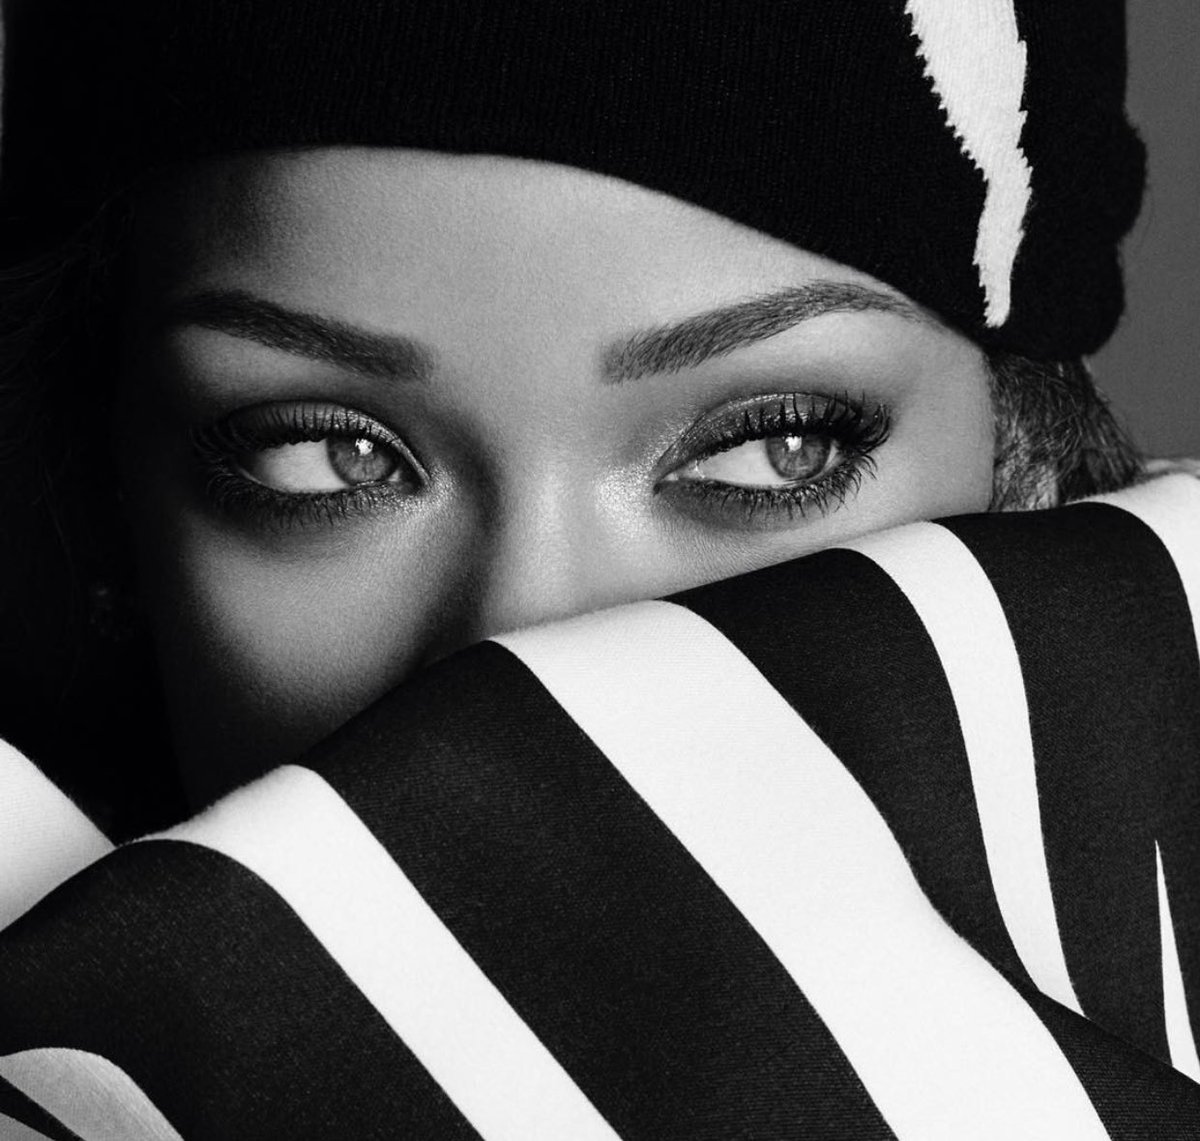 Rihanna News And Photos: Rihanna News